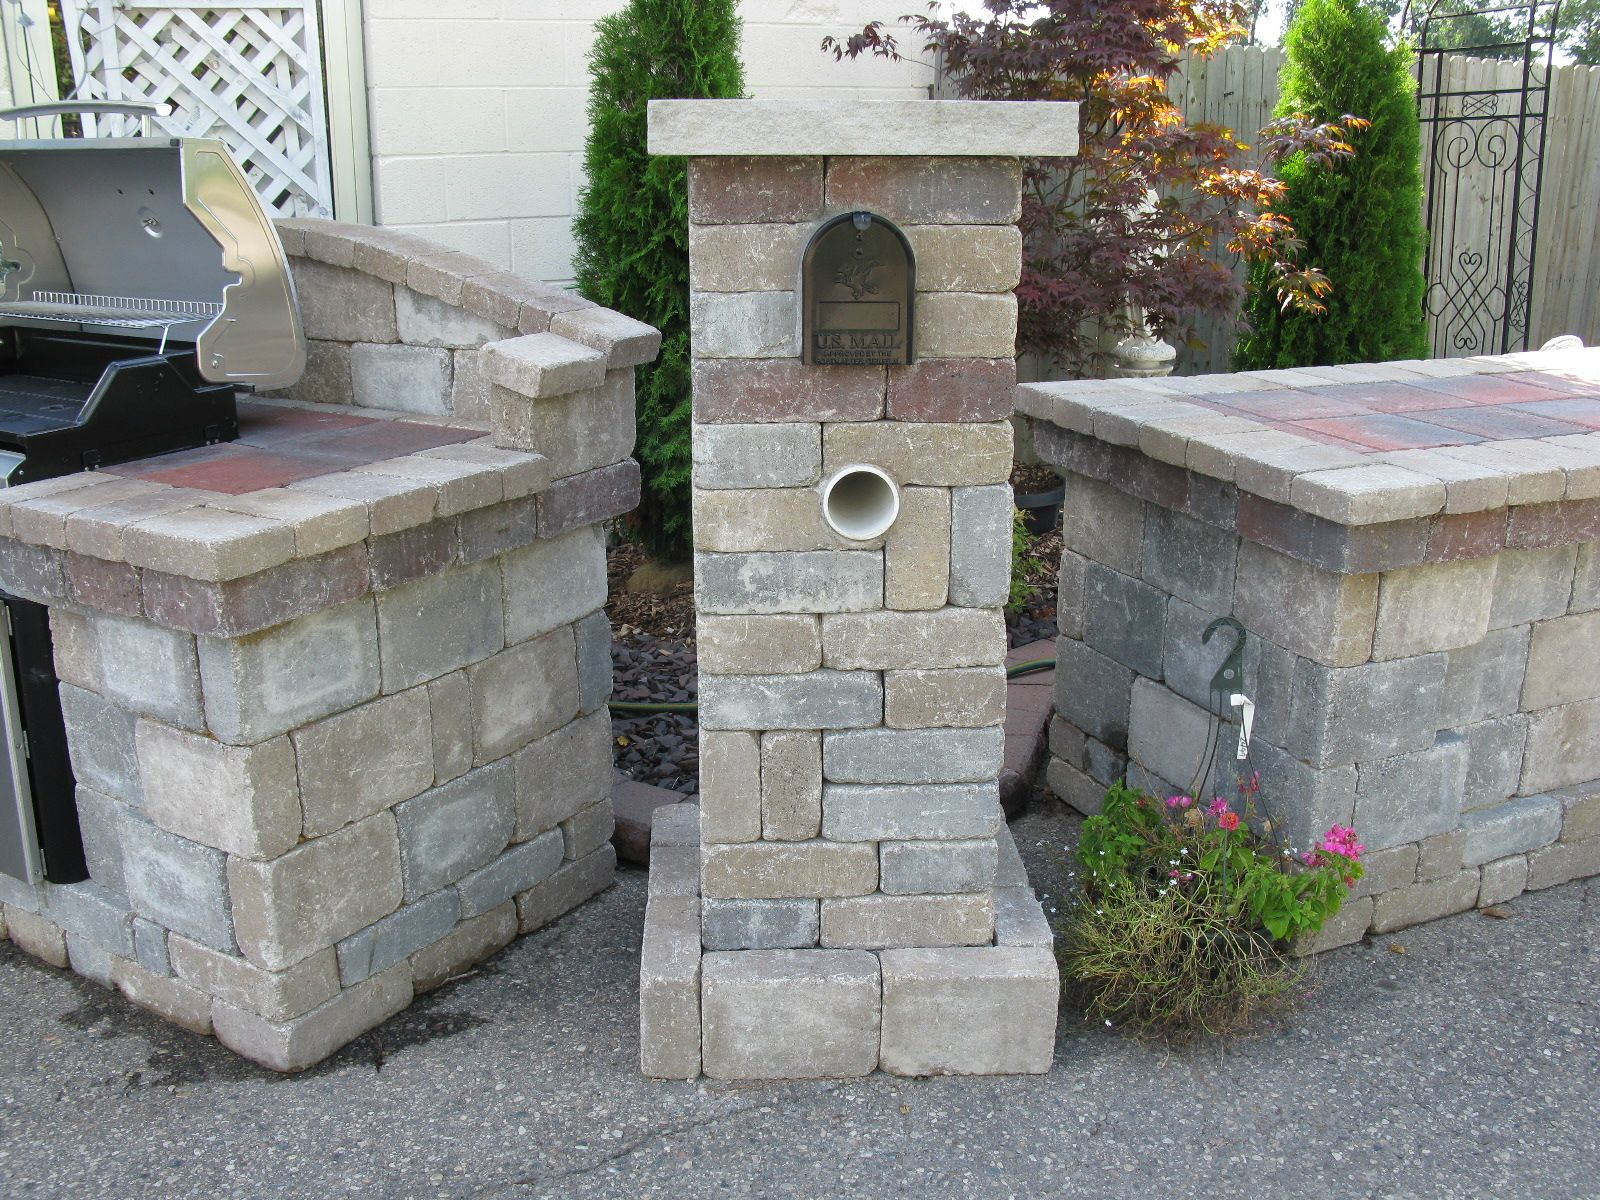 Mailbox Design Ideas modern mailbox designs for nice home accessories customize modern mailbox designs Brick Mailbox Full Landscapes Retaining Walls Brick Paver Walks